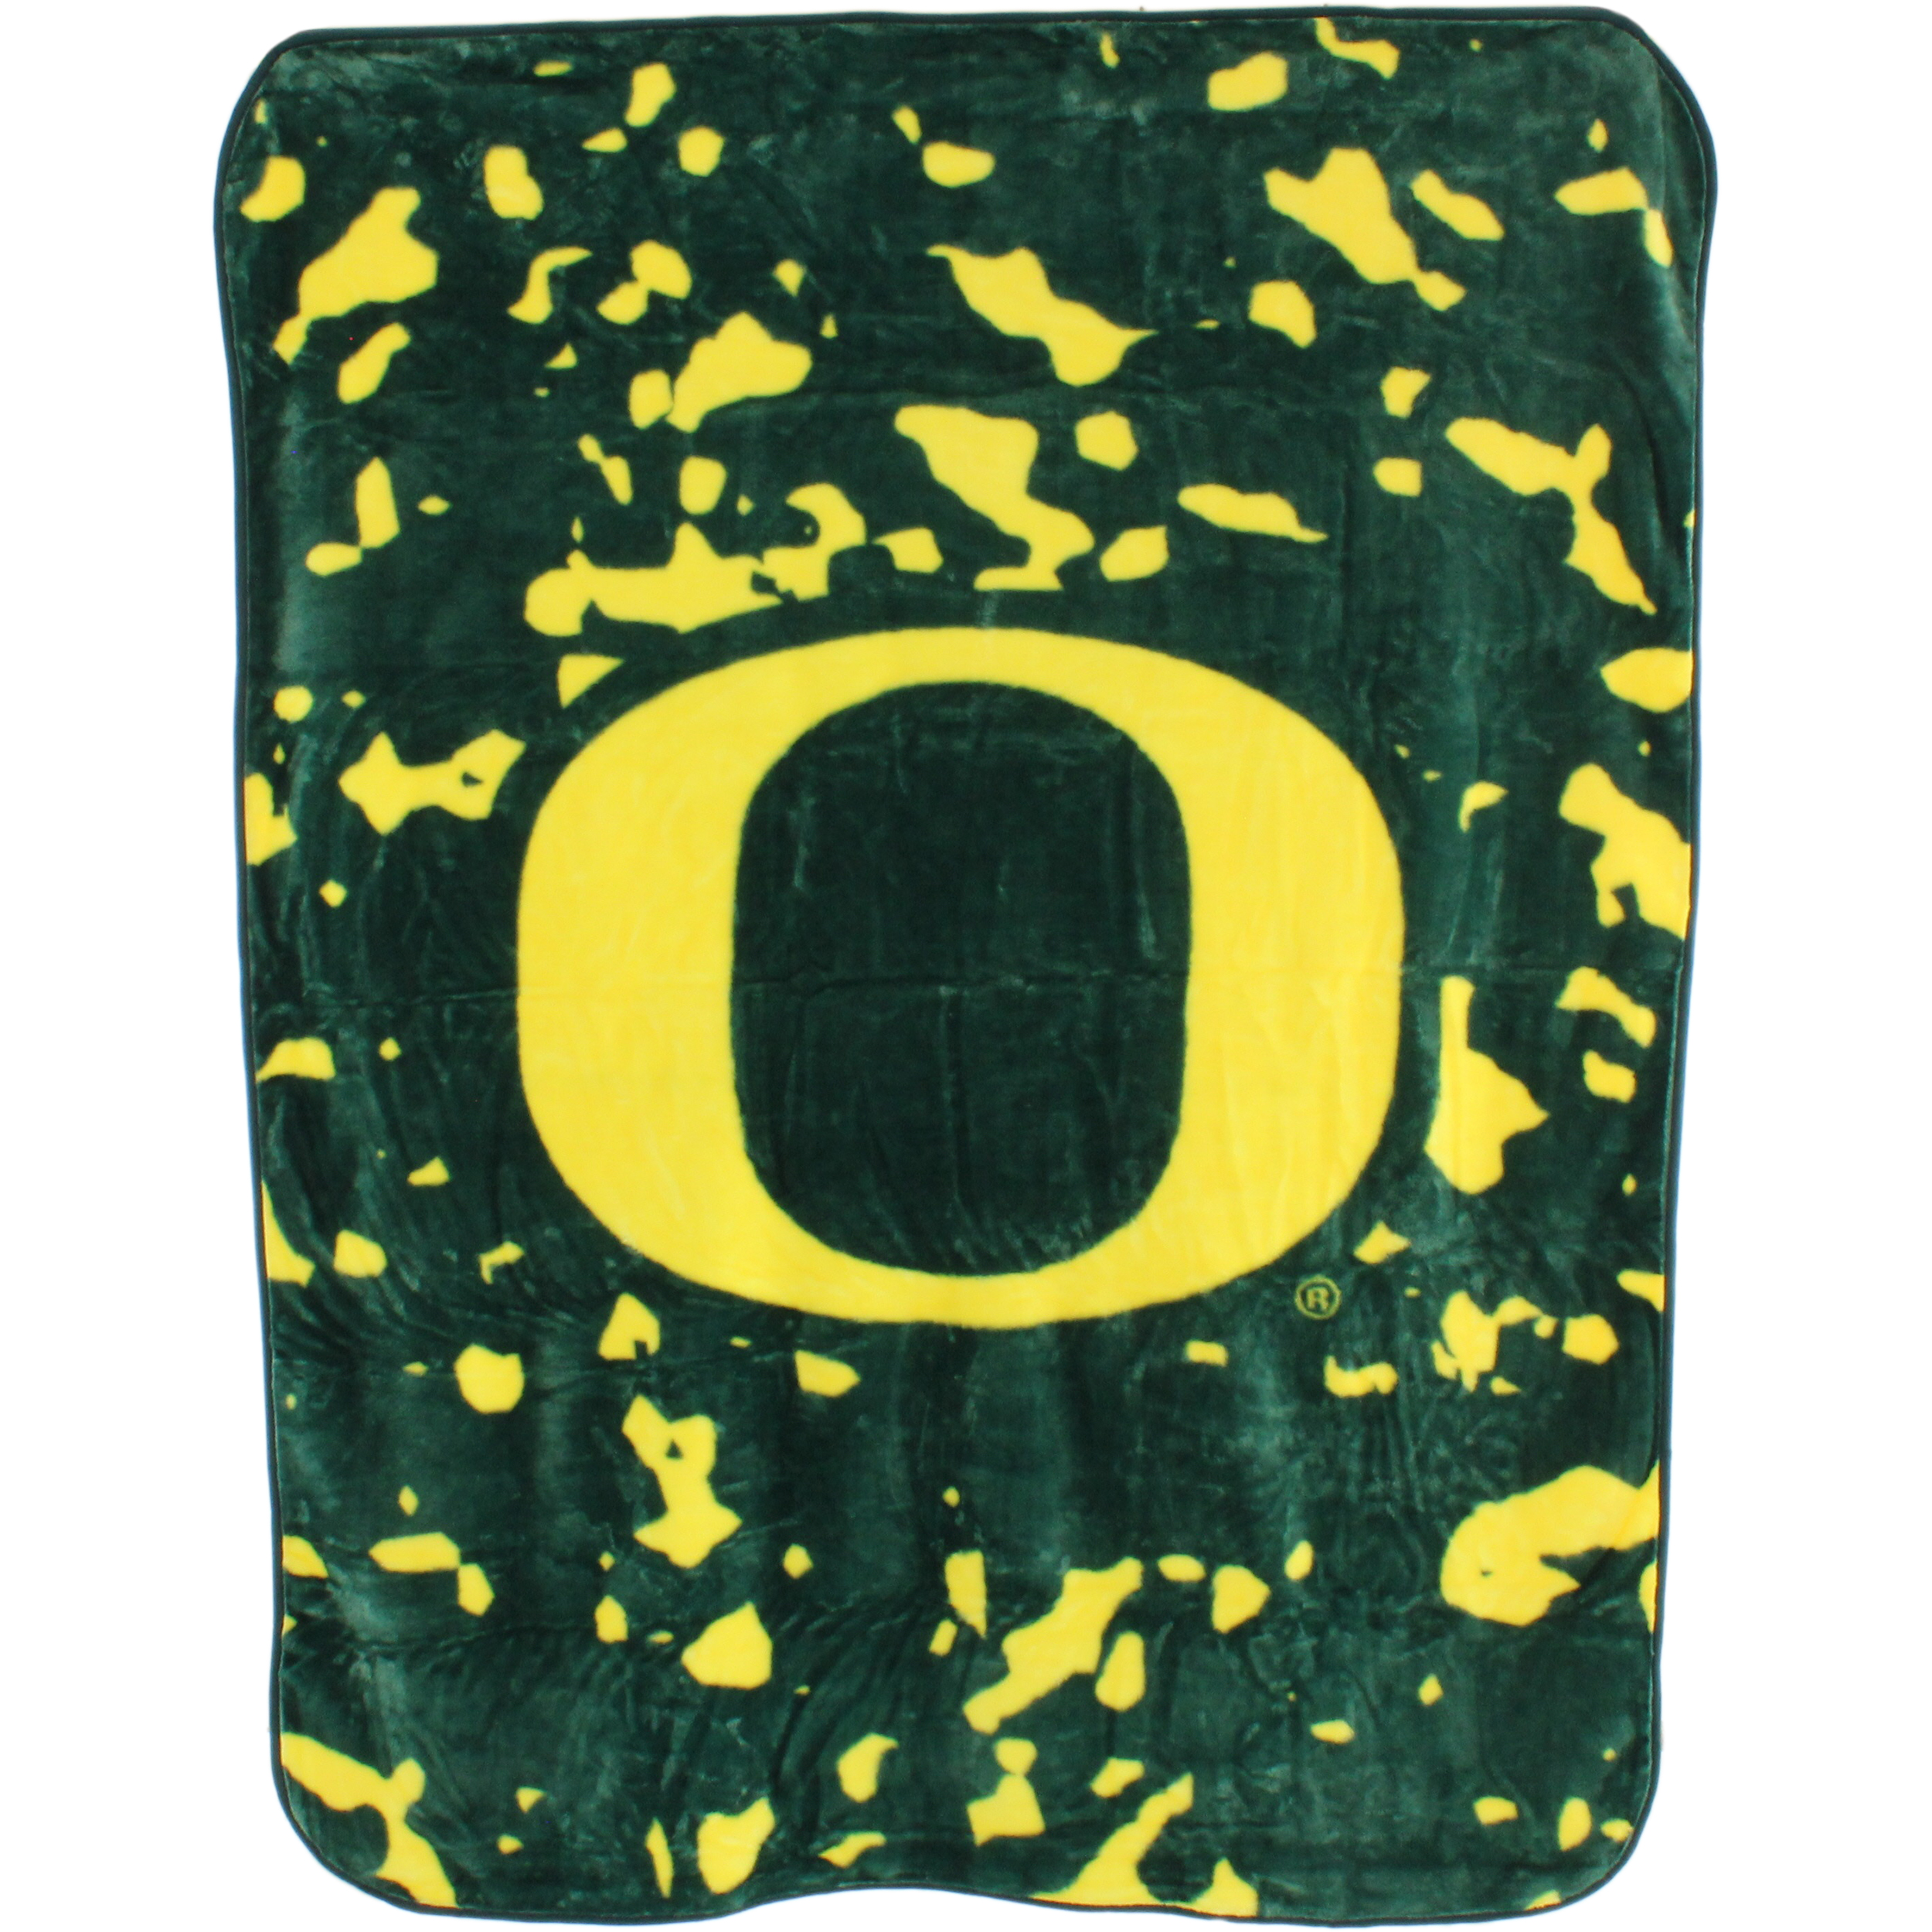 "College Covers Fan Shop Throws Oregon Ducks 63"" x 86"" Soft Raschel Throw Blanket"